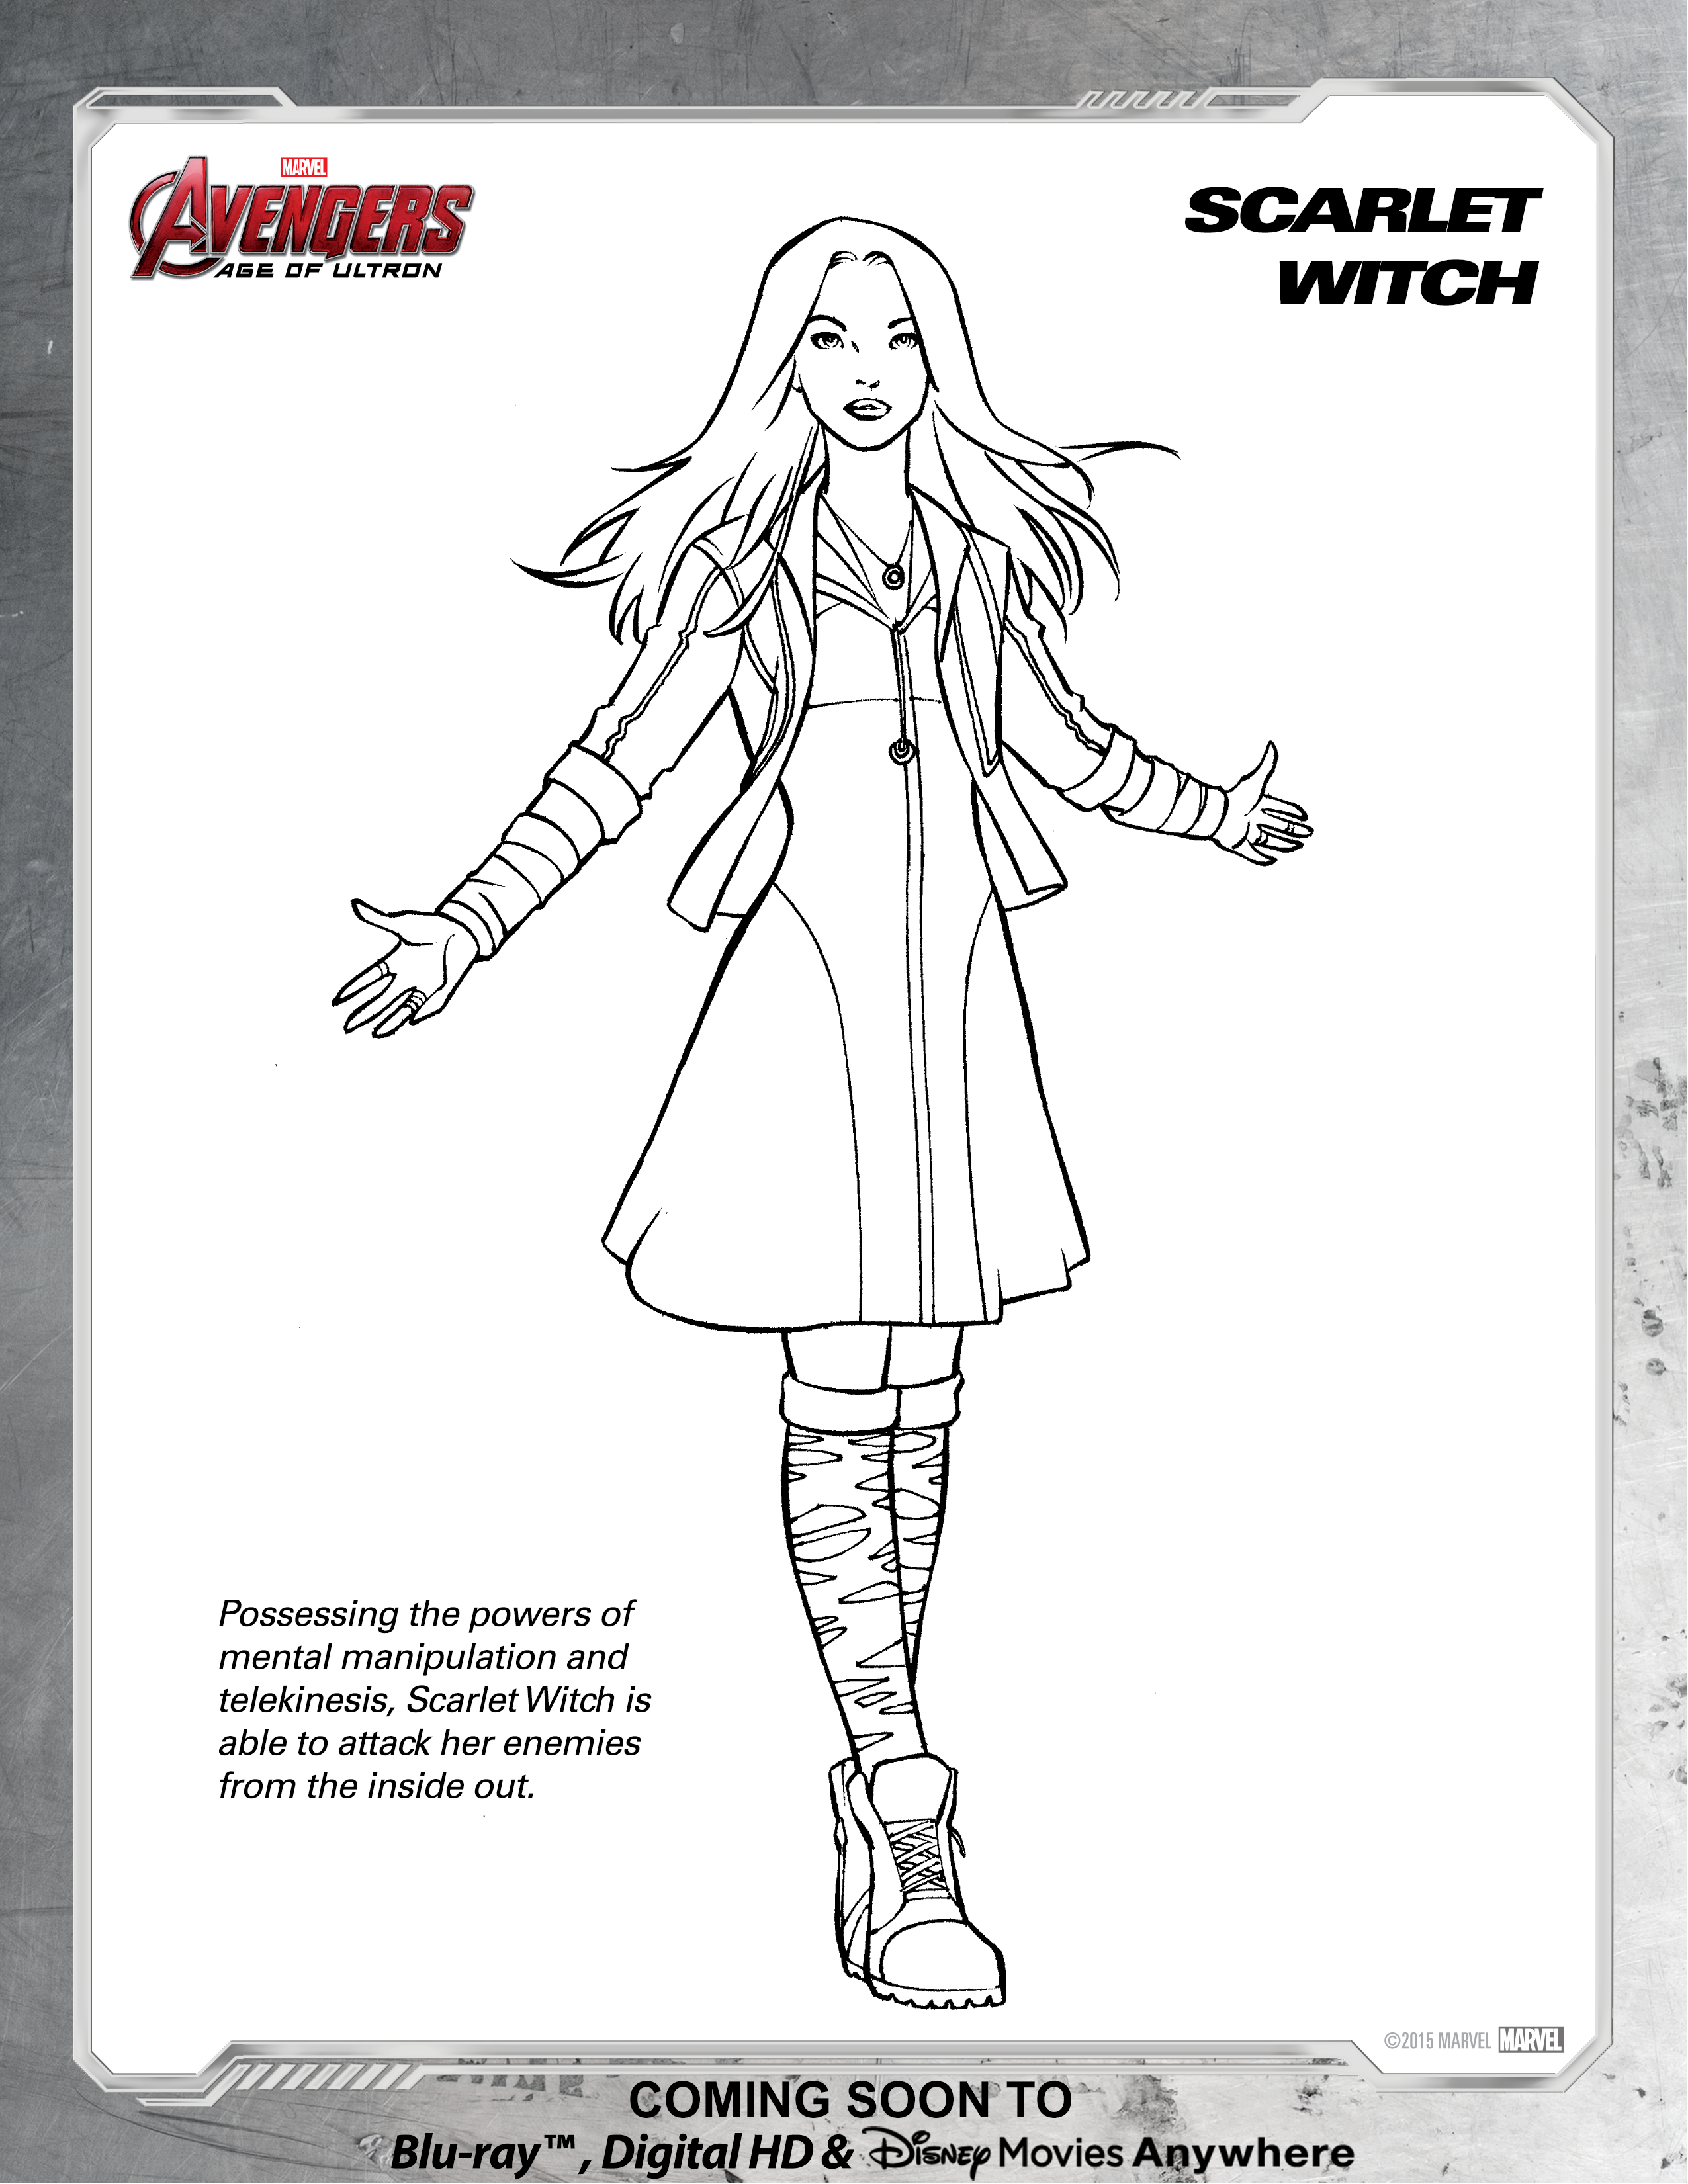 Avengers Scarlet Witch Coloring Page | Disney Movies